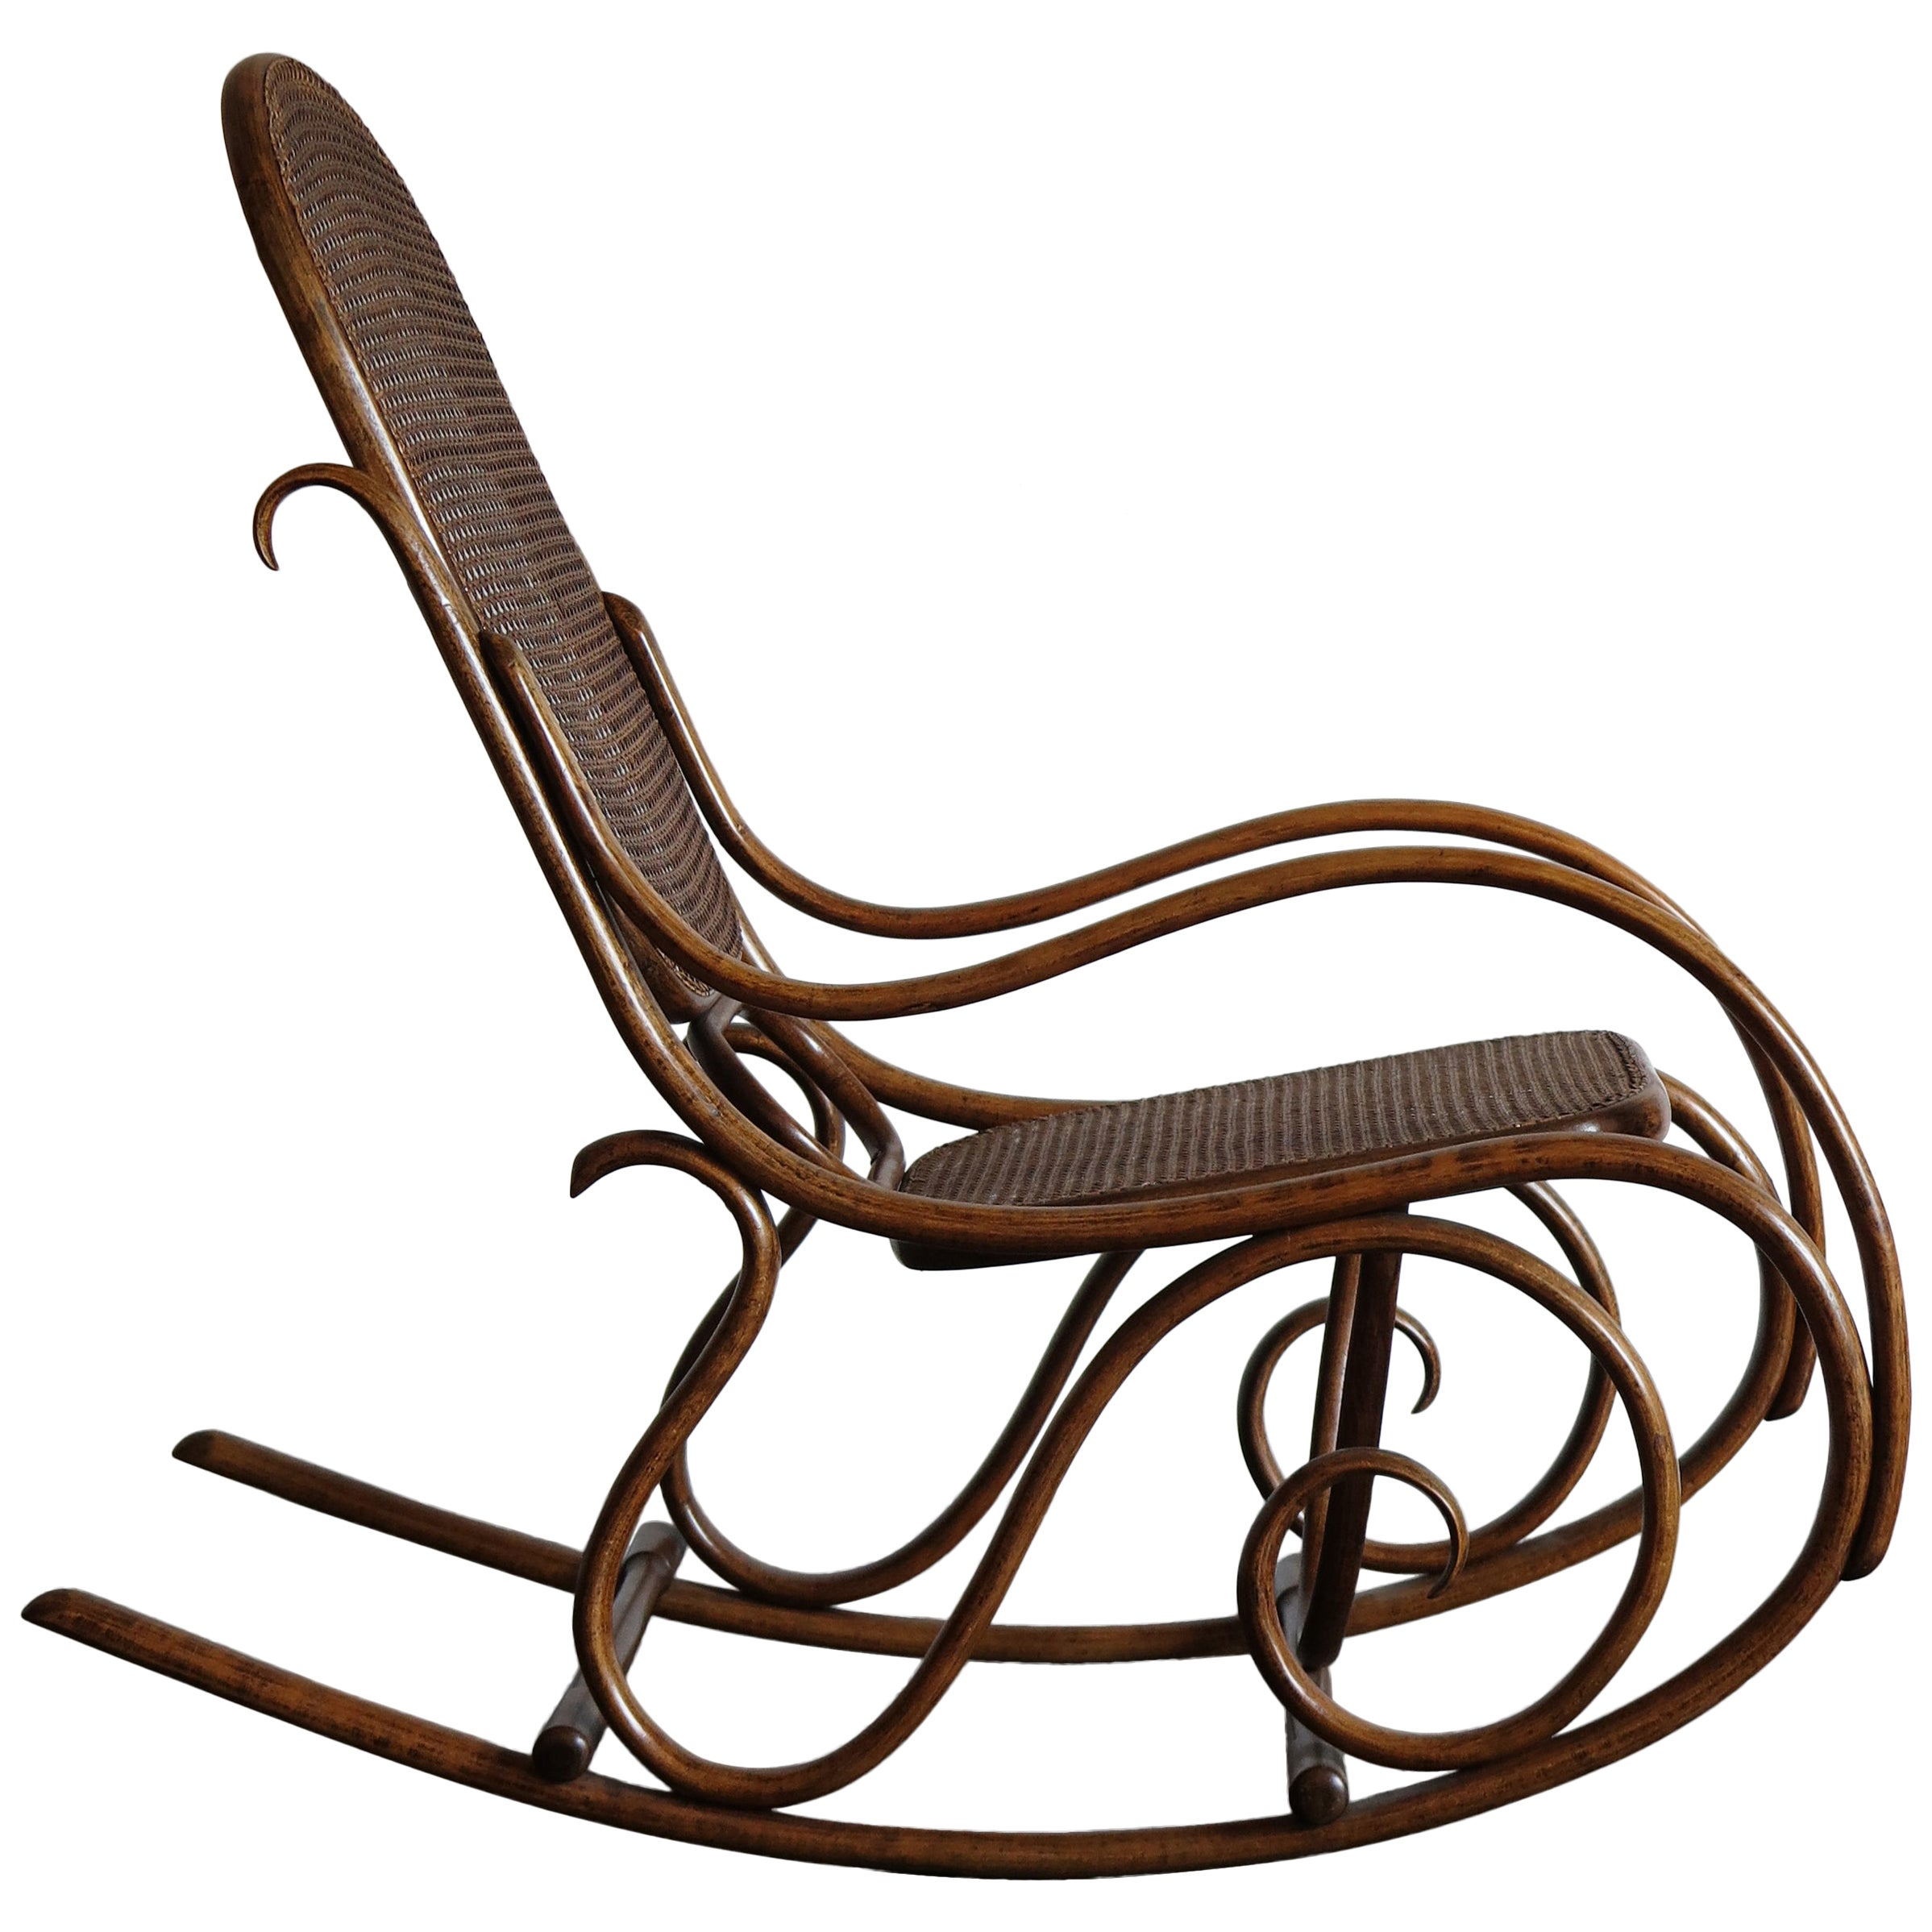 Thonet Bentwood Cane Rocking Chair, 1920s